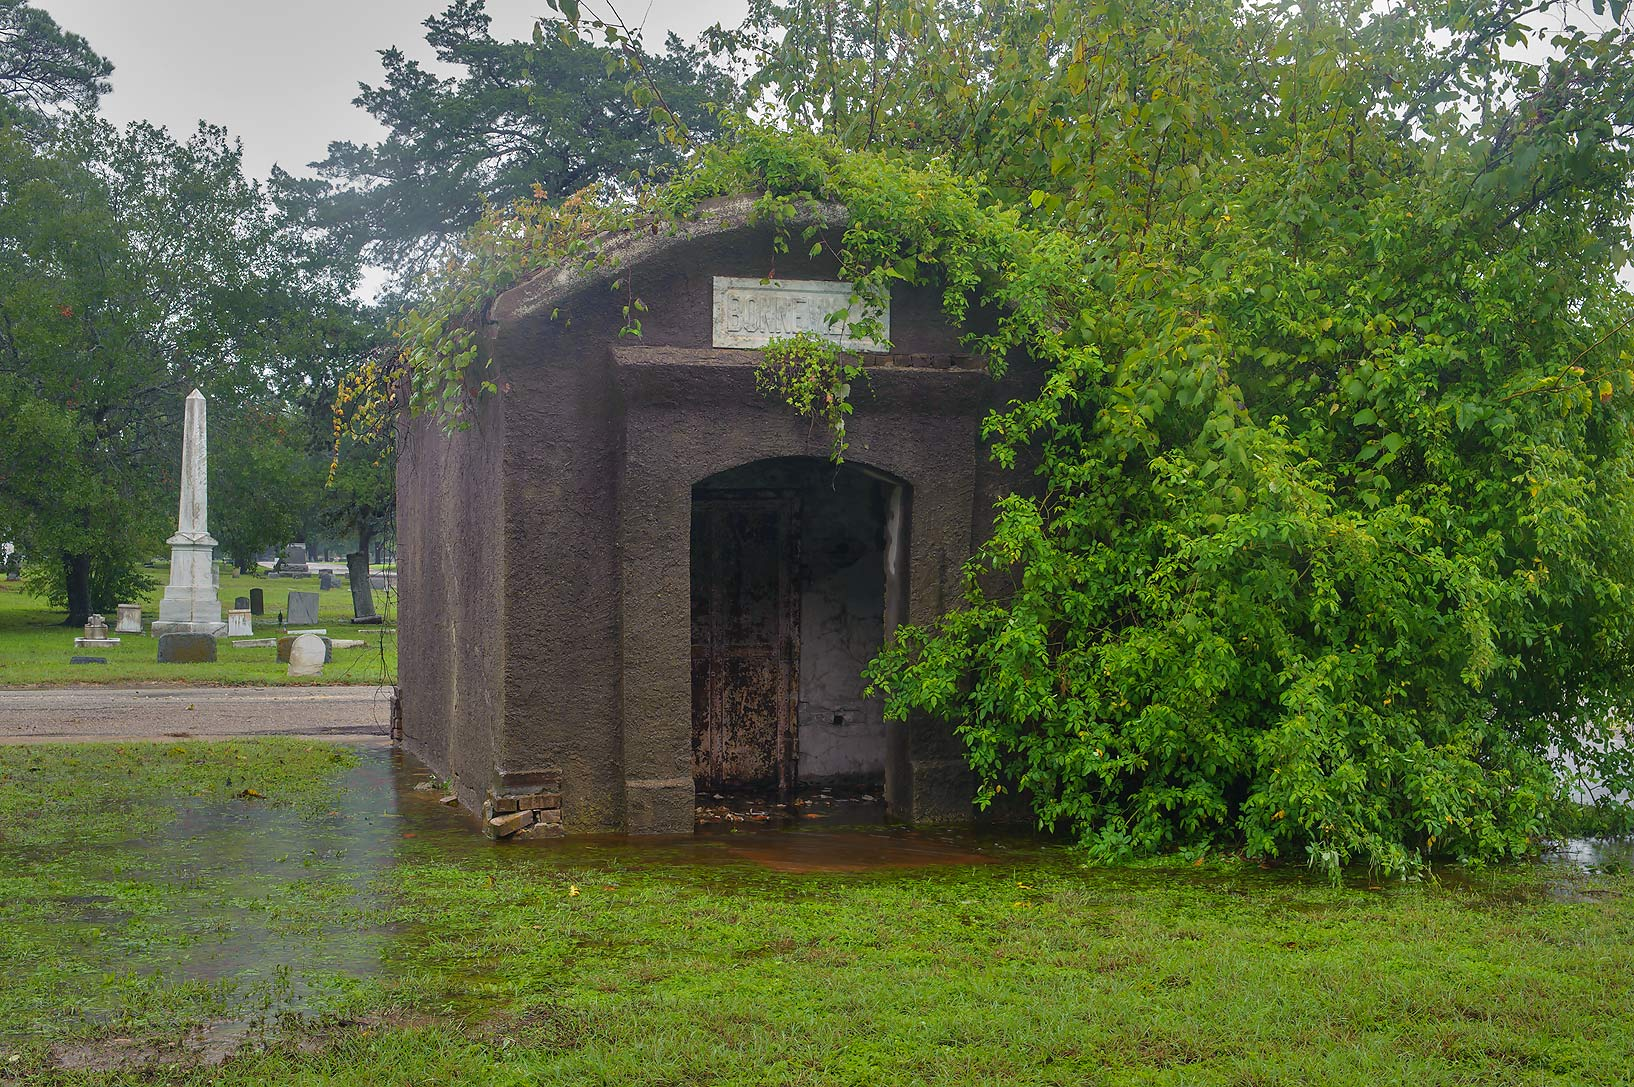 A crypt in City Cemetery at rain. Bryan, Texas